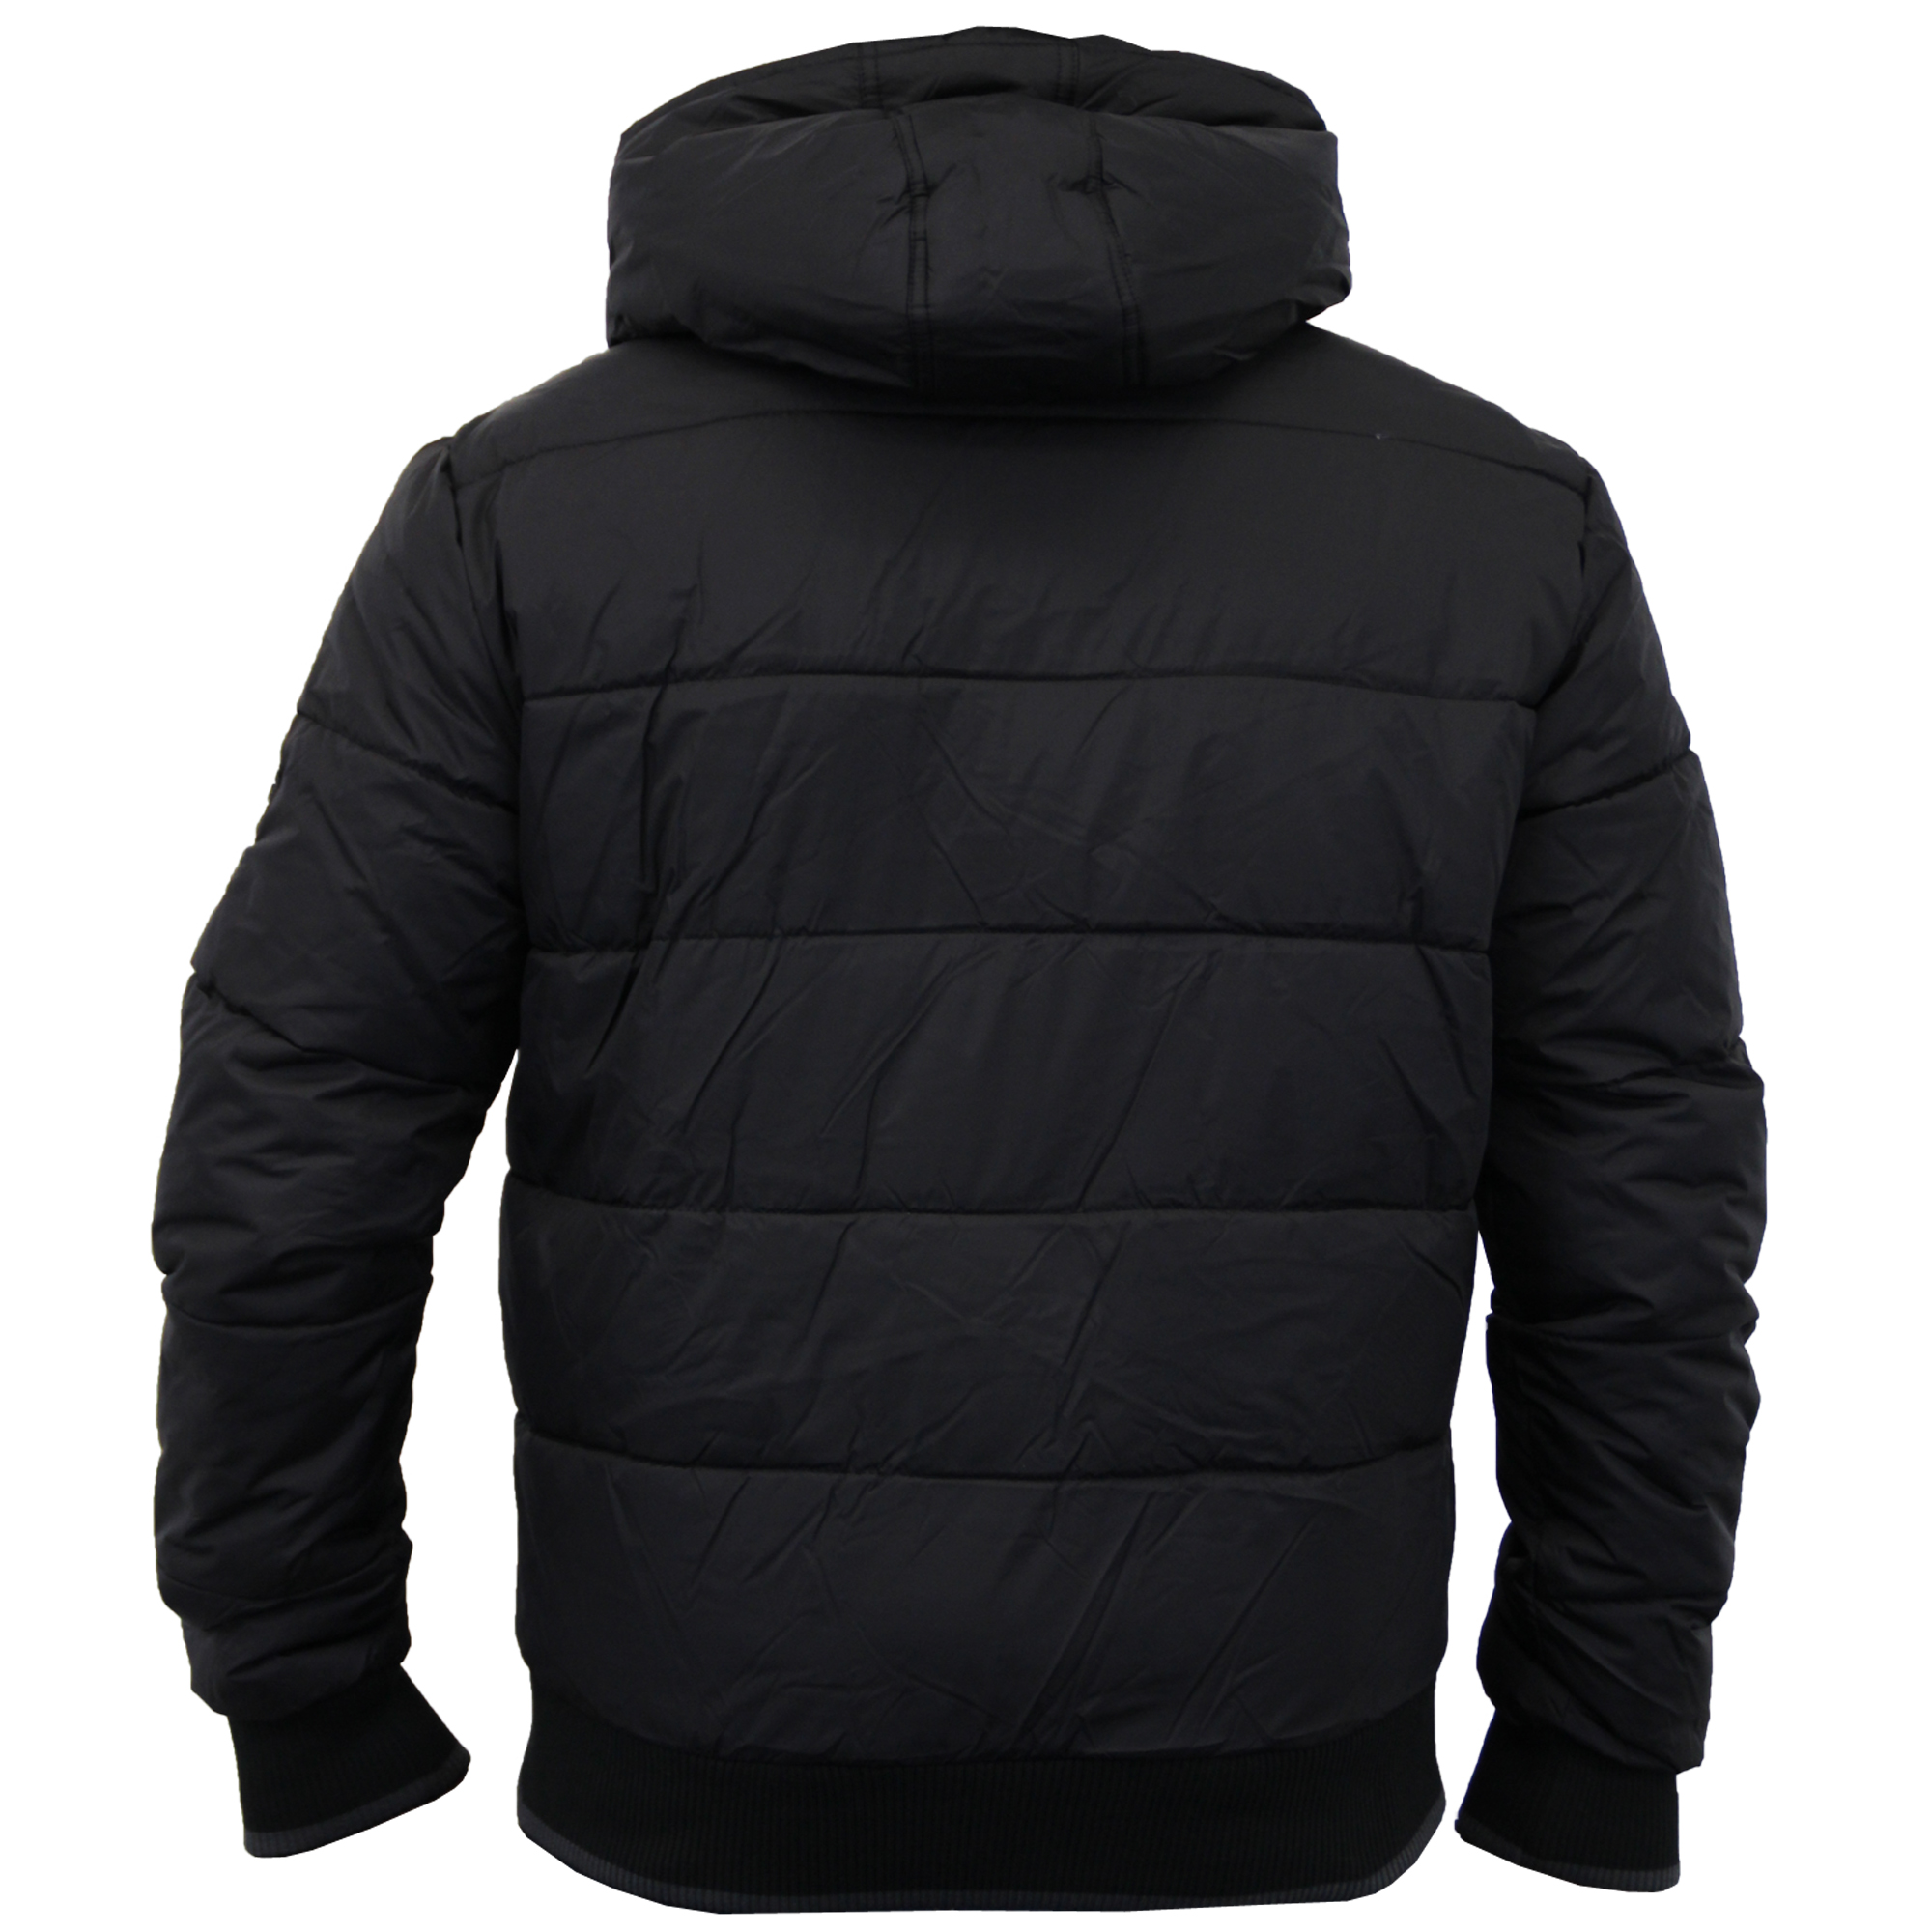 Discover the range of quilted jackets for men at ASOS. Shop our collection of padded and puffer jackets in formal and casual styles today. your browser is not supported. Pull&Bear quilted jacket with hood in blue. £ ASOS DESIGN quilted jacket with funnel neck in navy. £ ASOS DESIGN faux leather jacket with quilting.